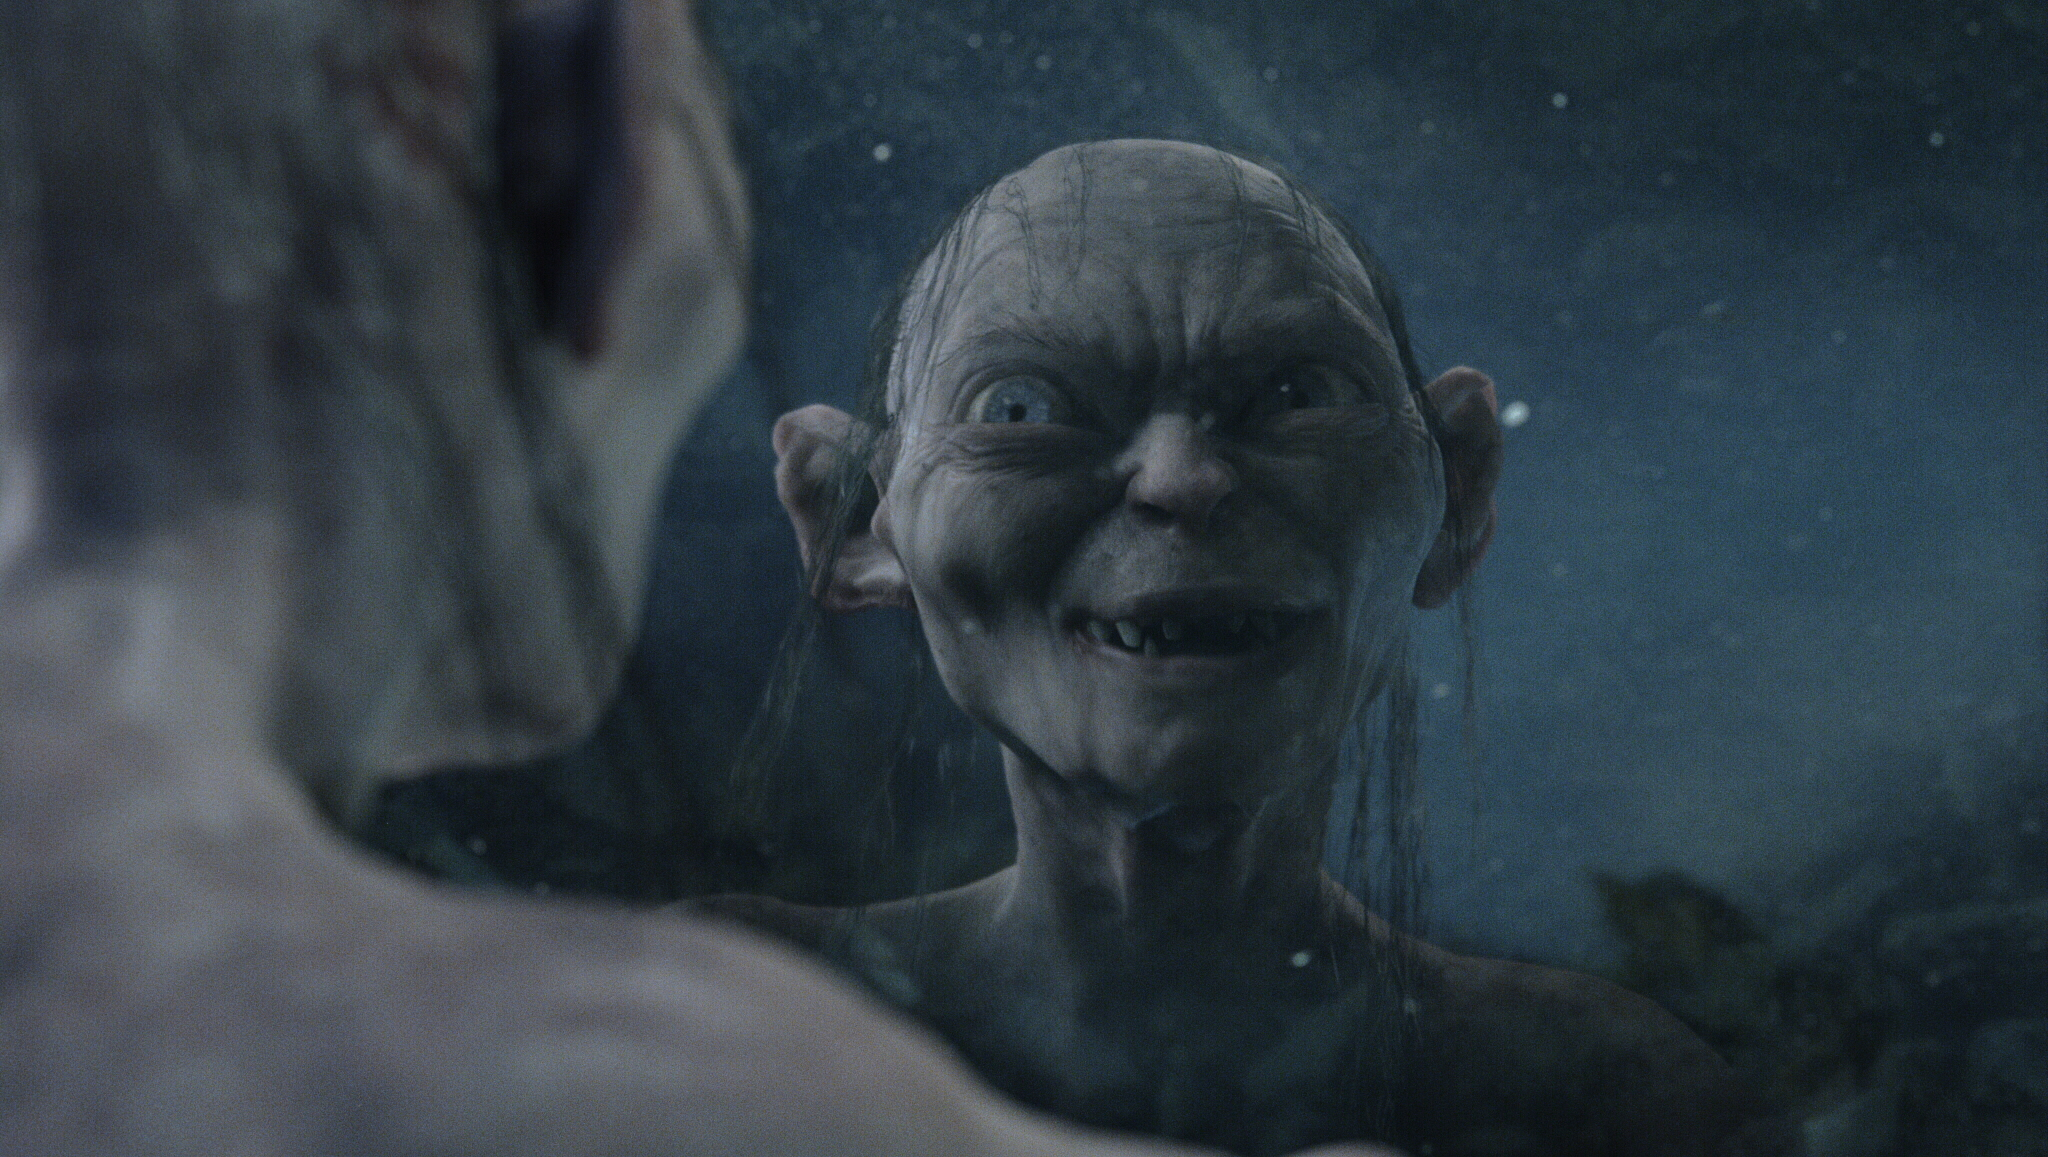 Gollum Lord Of The Rings wallpaper 46608